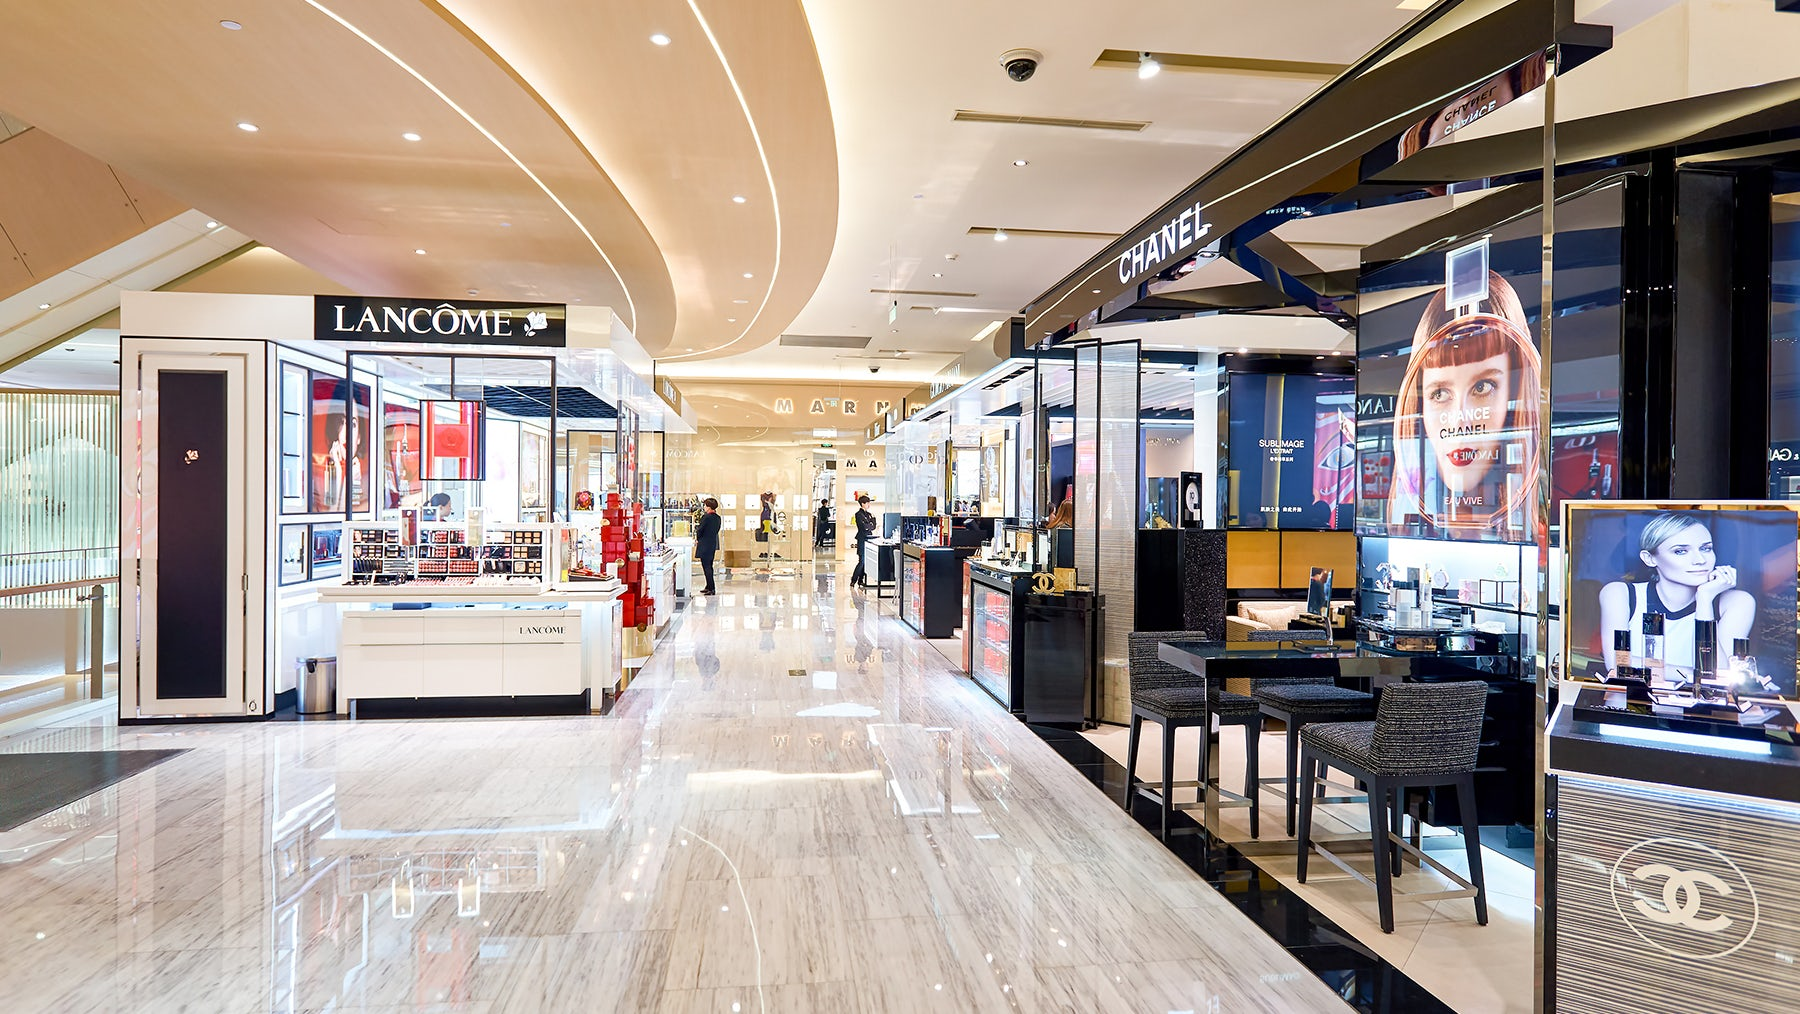 Inside MixC, the largest shopping mall in Shenzhen, China   Source: Shutterstock